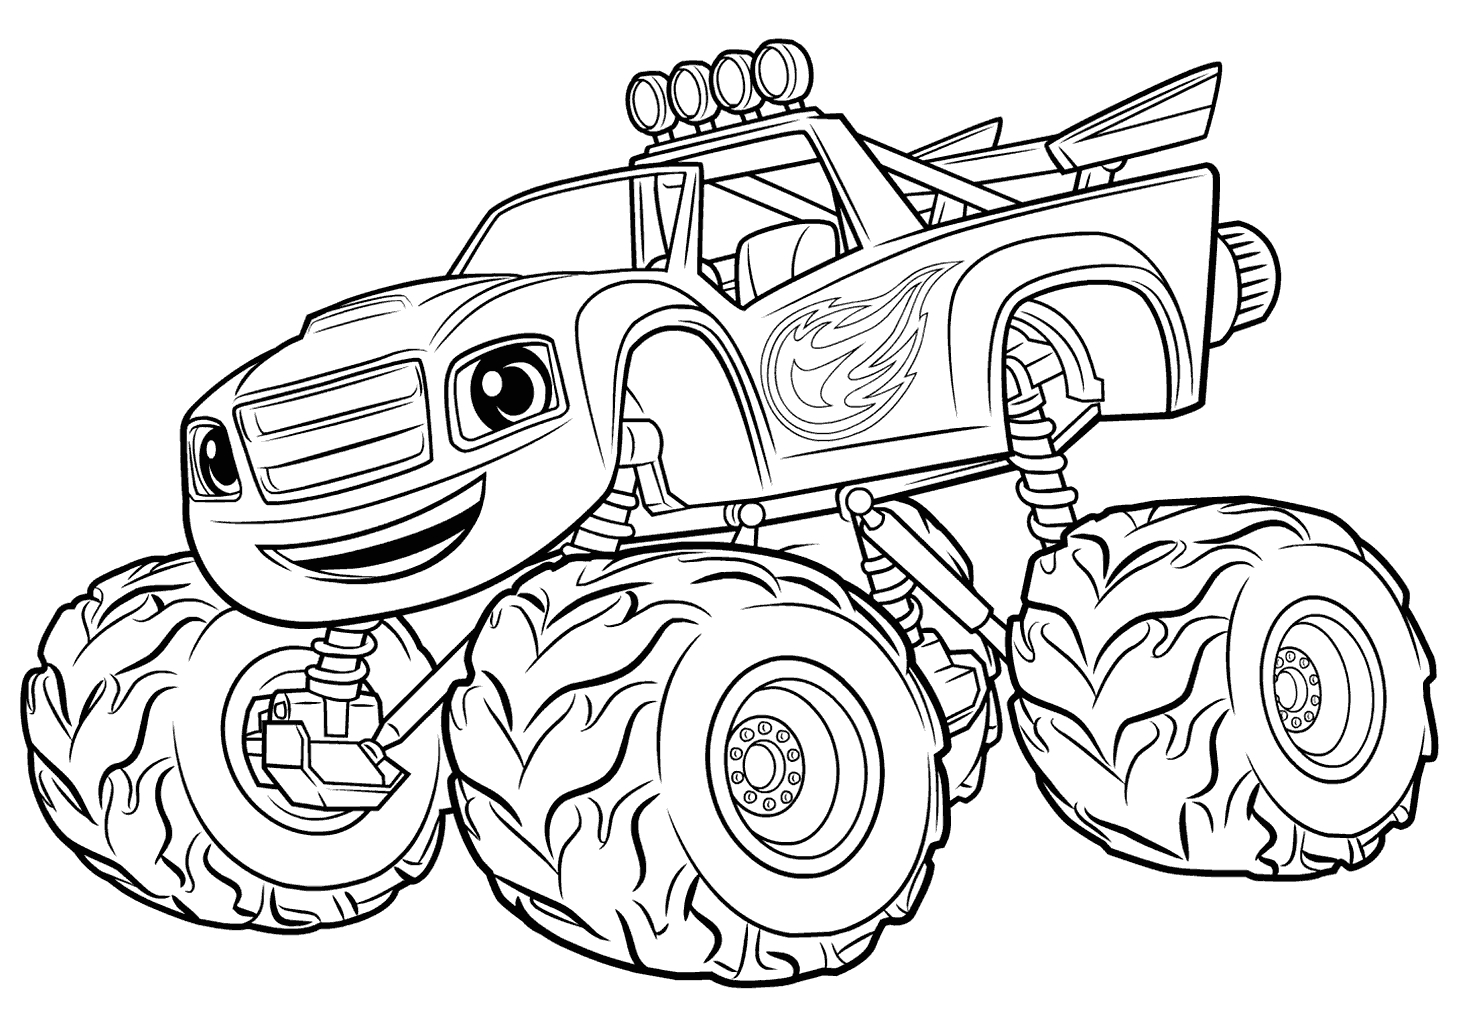 Coloring Pages Blaze and the Monster Machines Blaze and the Monster Machines Coloring Pages Best